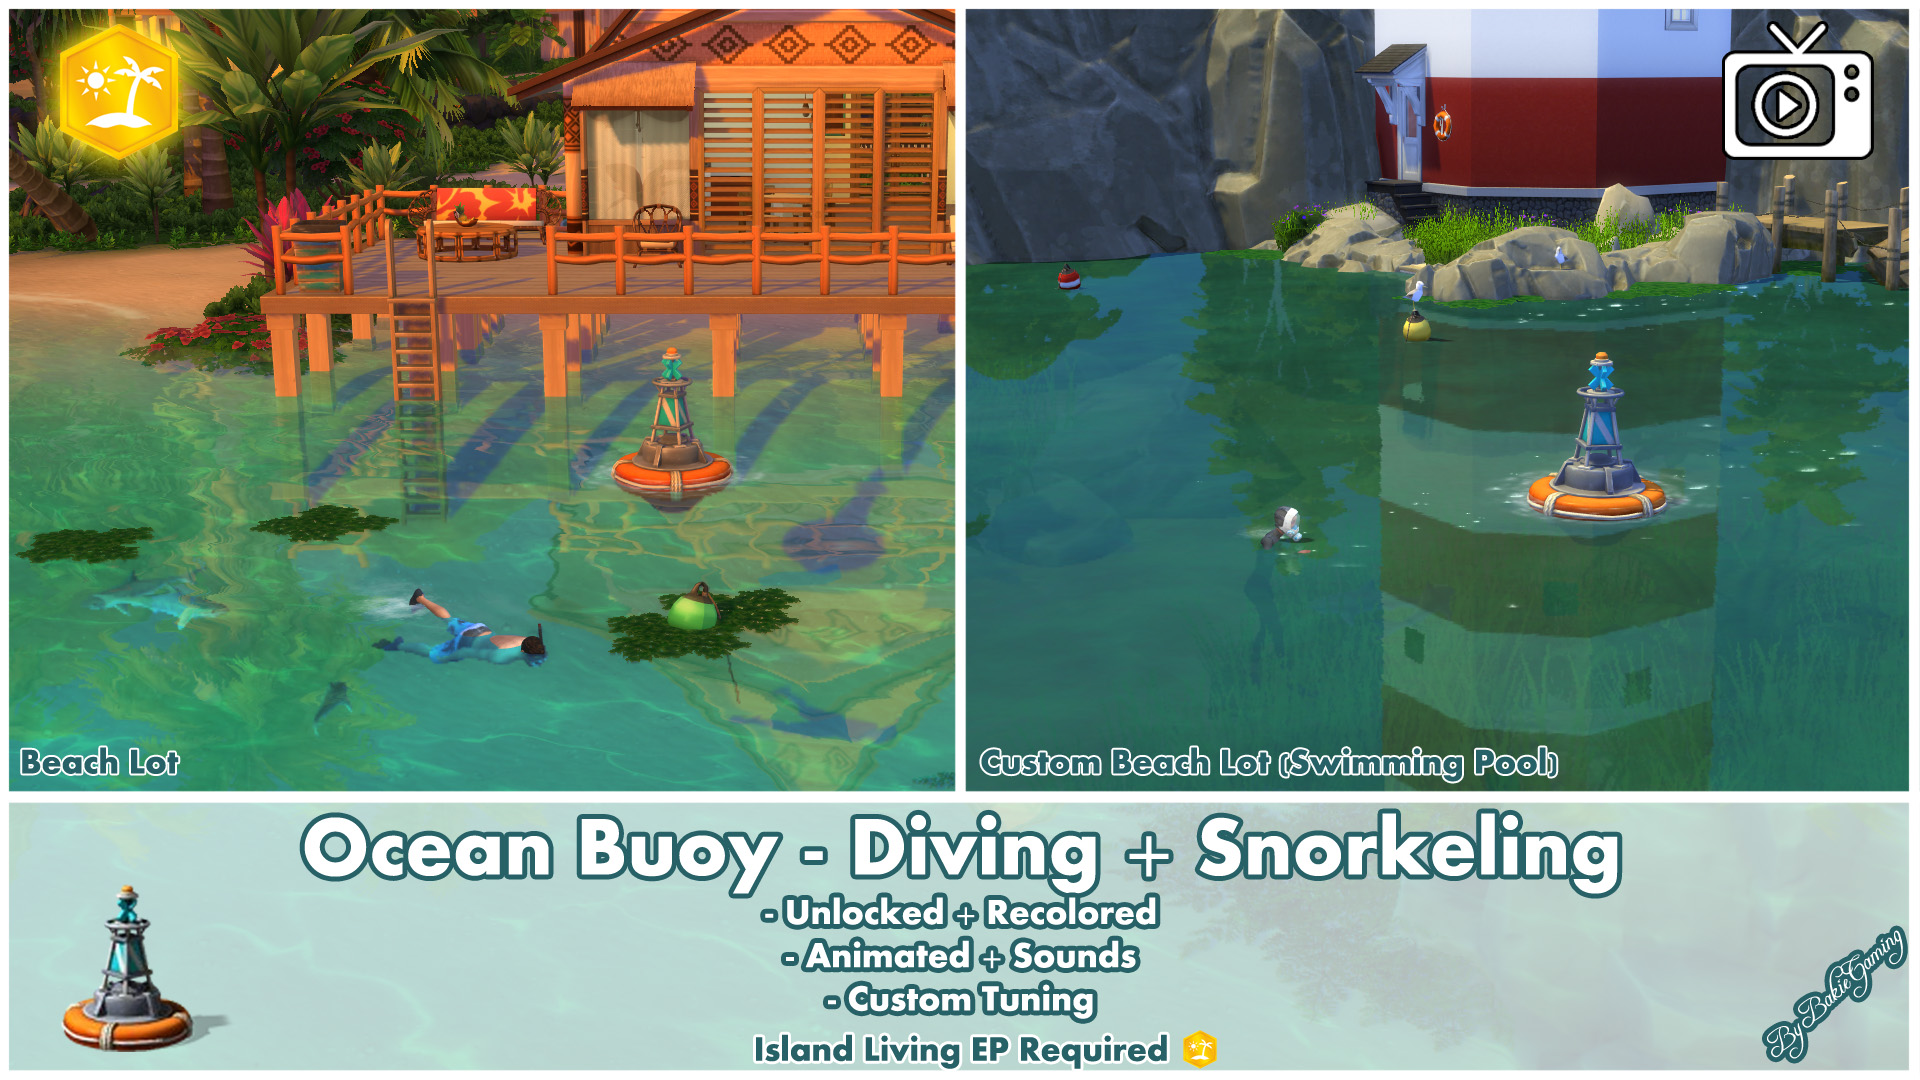 Mod The Sims - Ocean Buoy - Diving & Snorkeling